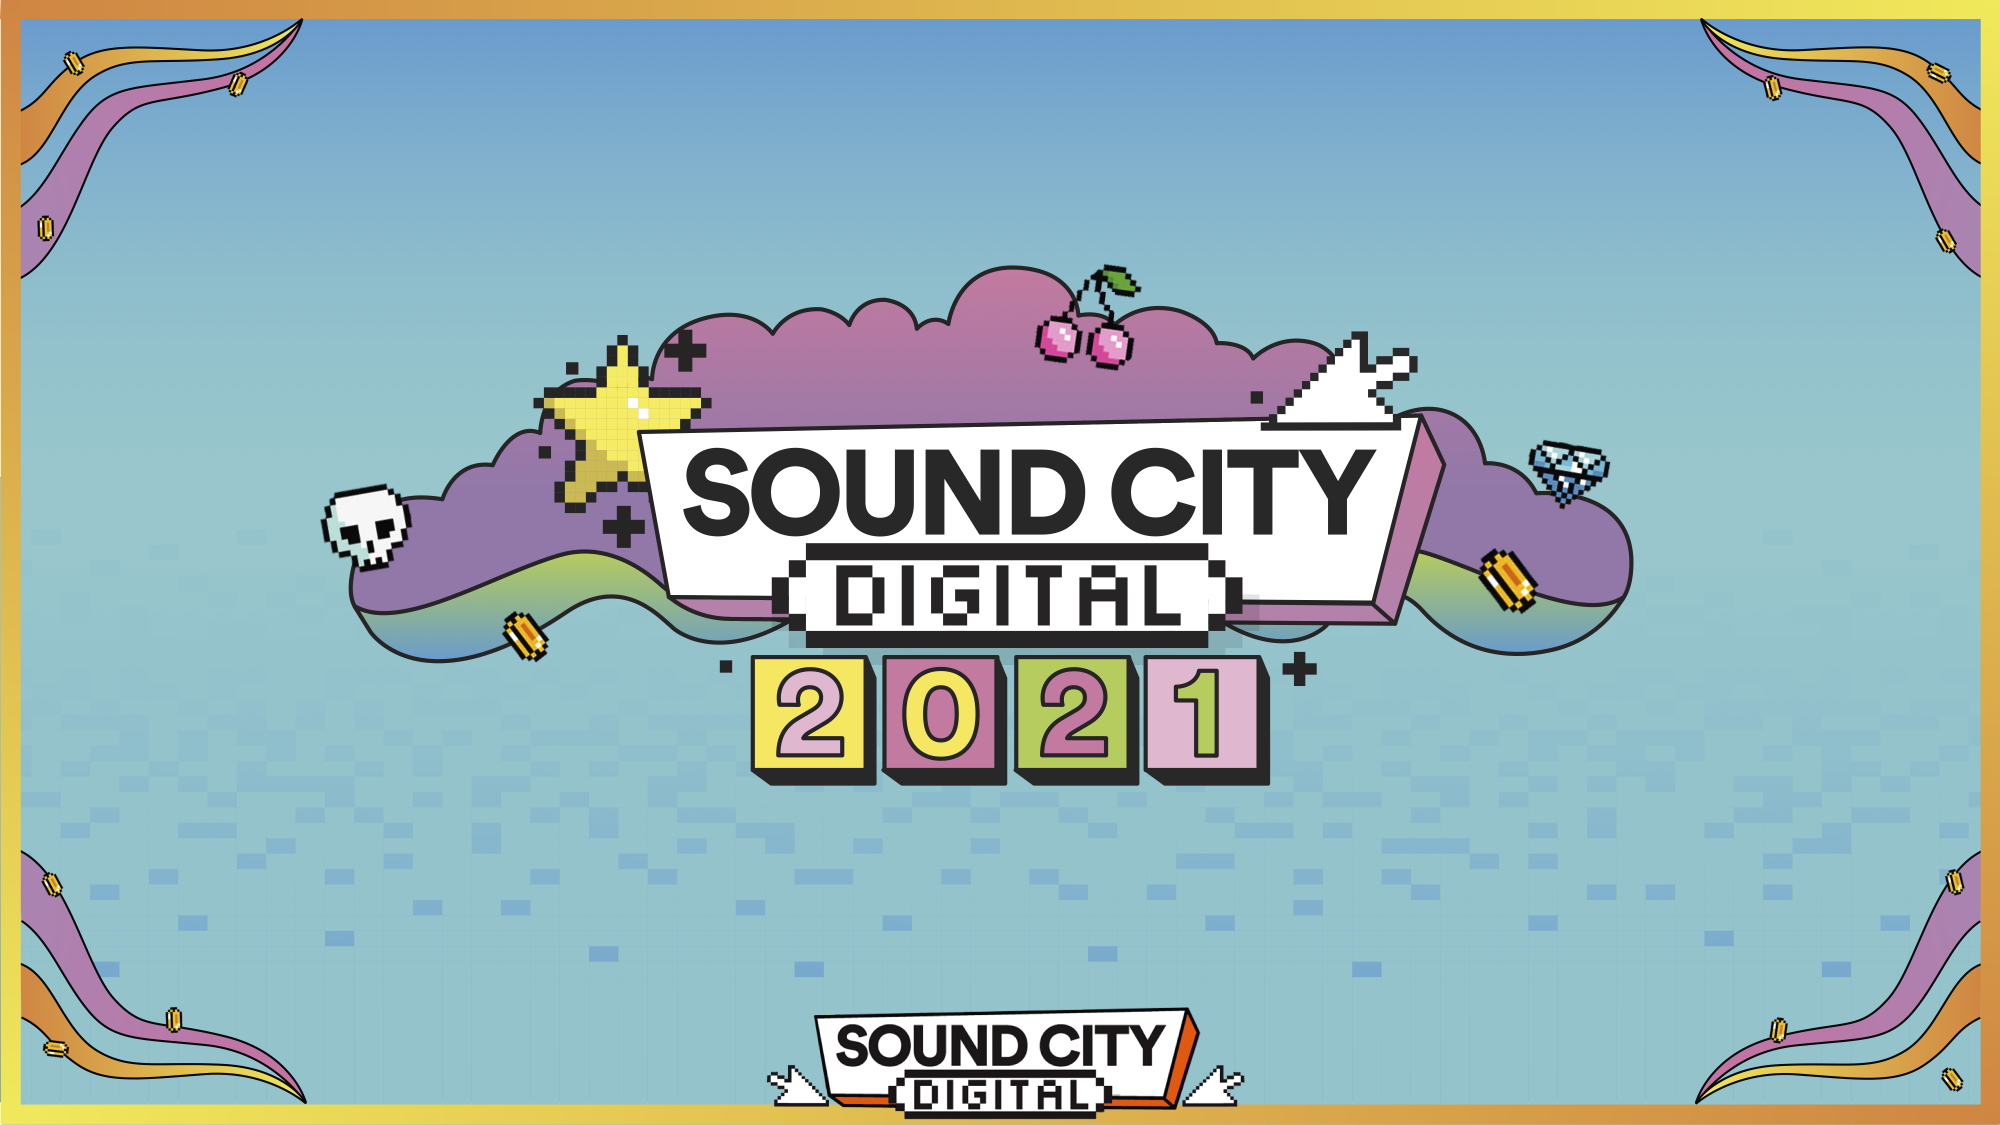 SOUND CITY DIGITAL: THE FULL SCHEDULE